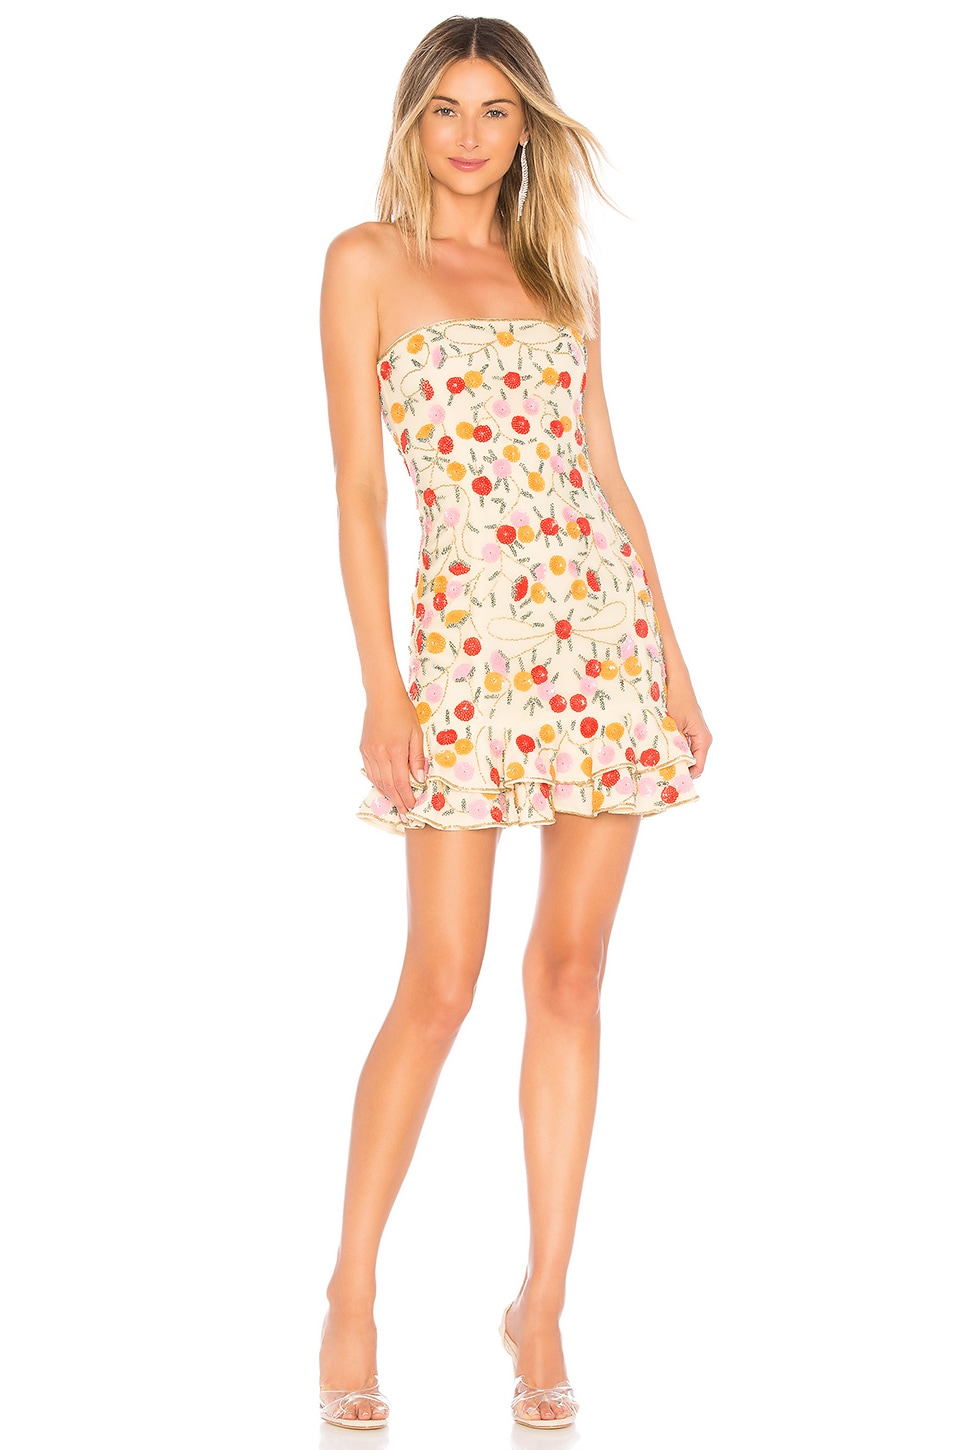 X by NBD Tammy Embellished Mini Dress in Nude & Pink